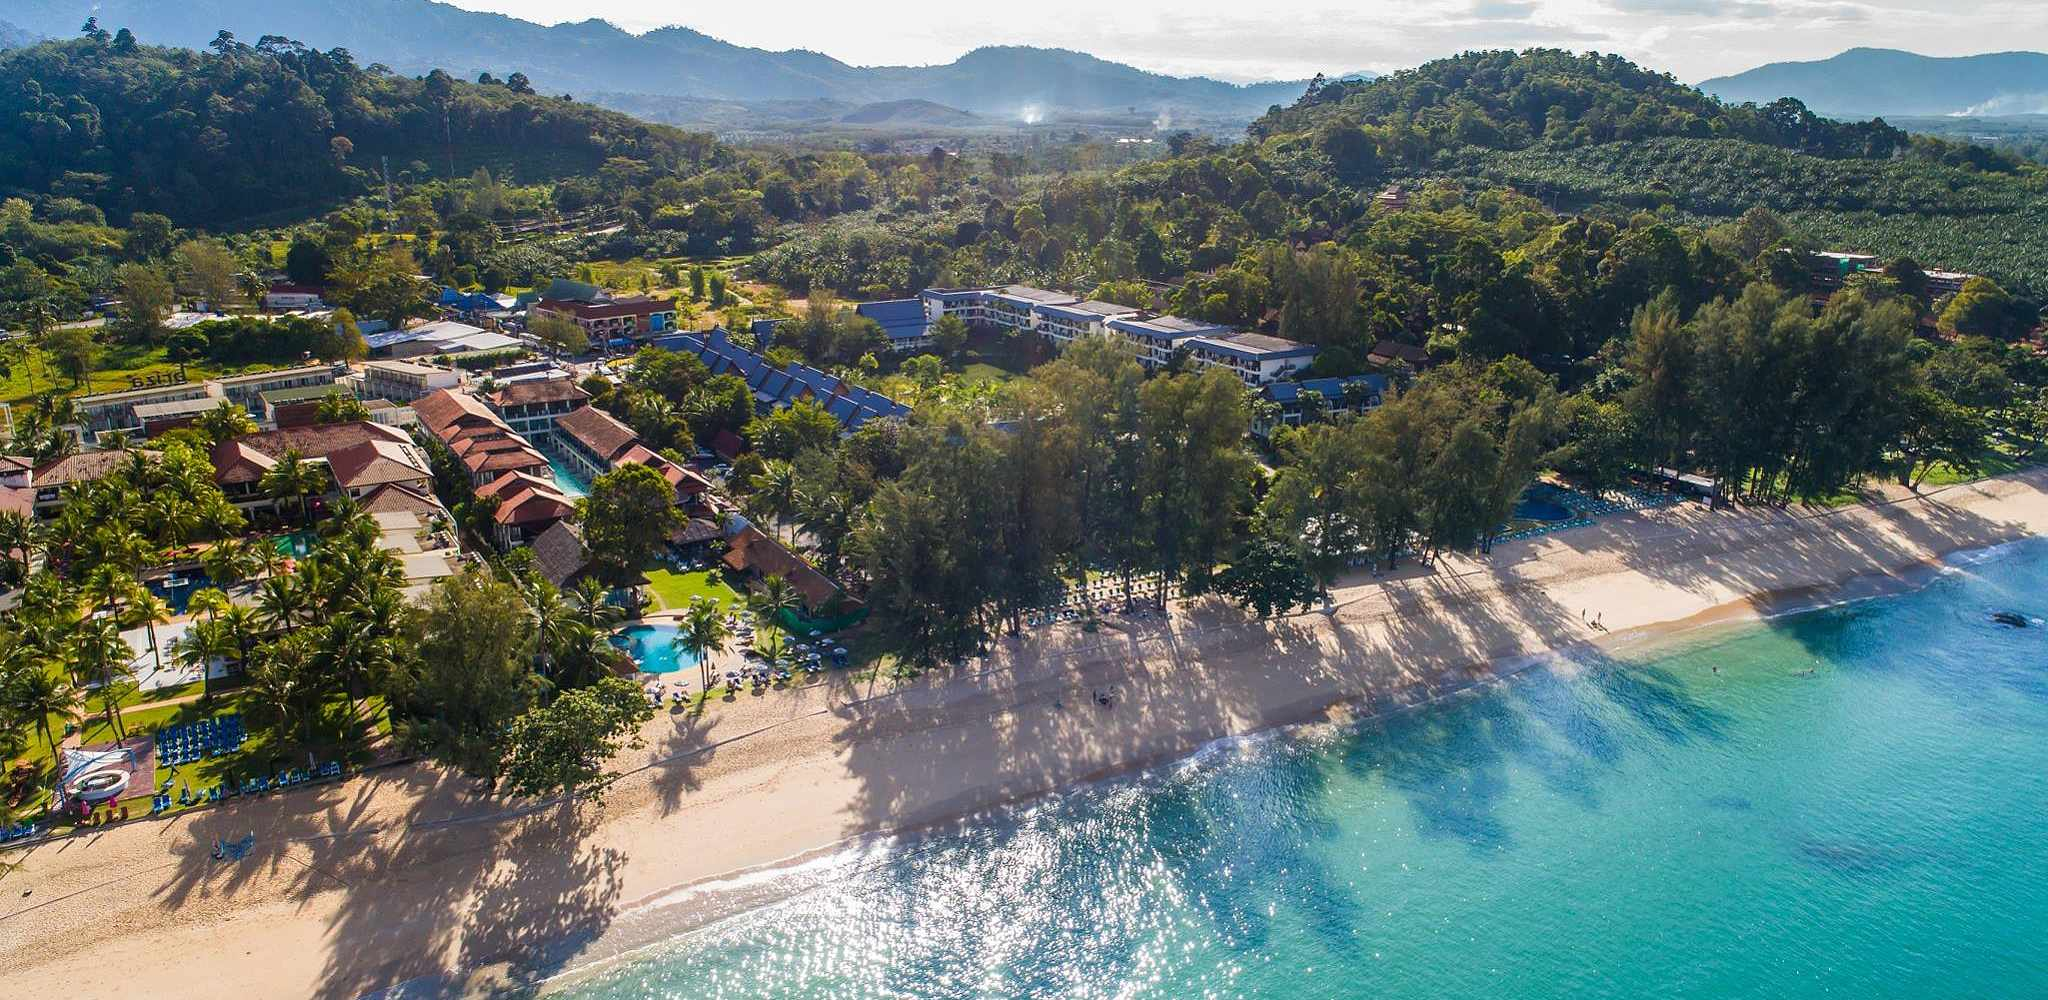 overview photo of the beach, sea and the Emerald Beach Resort in Khao Lak